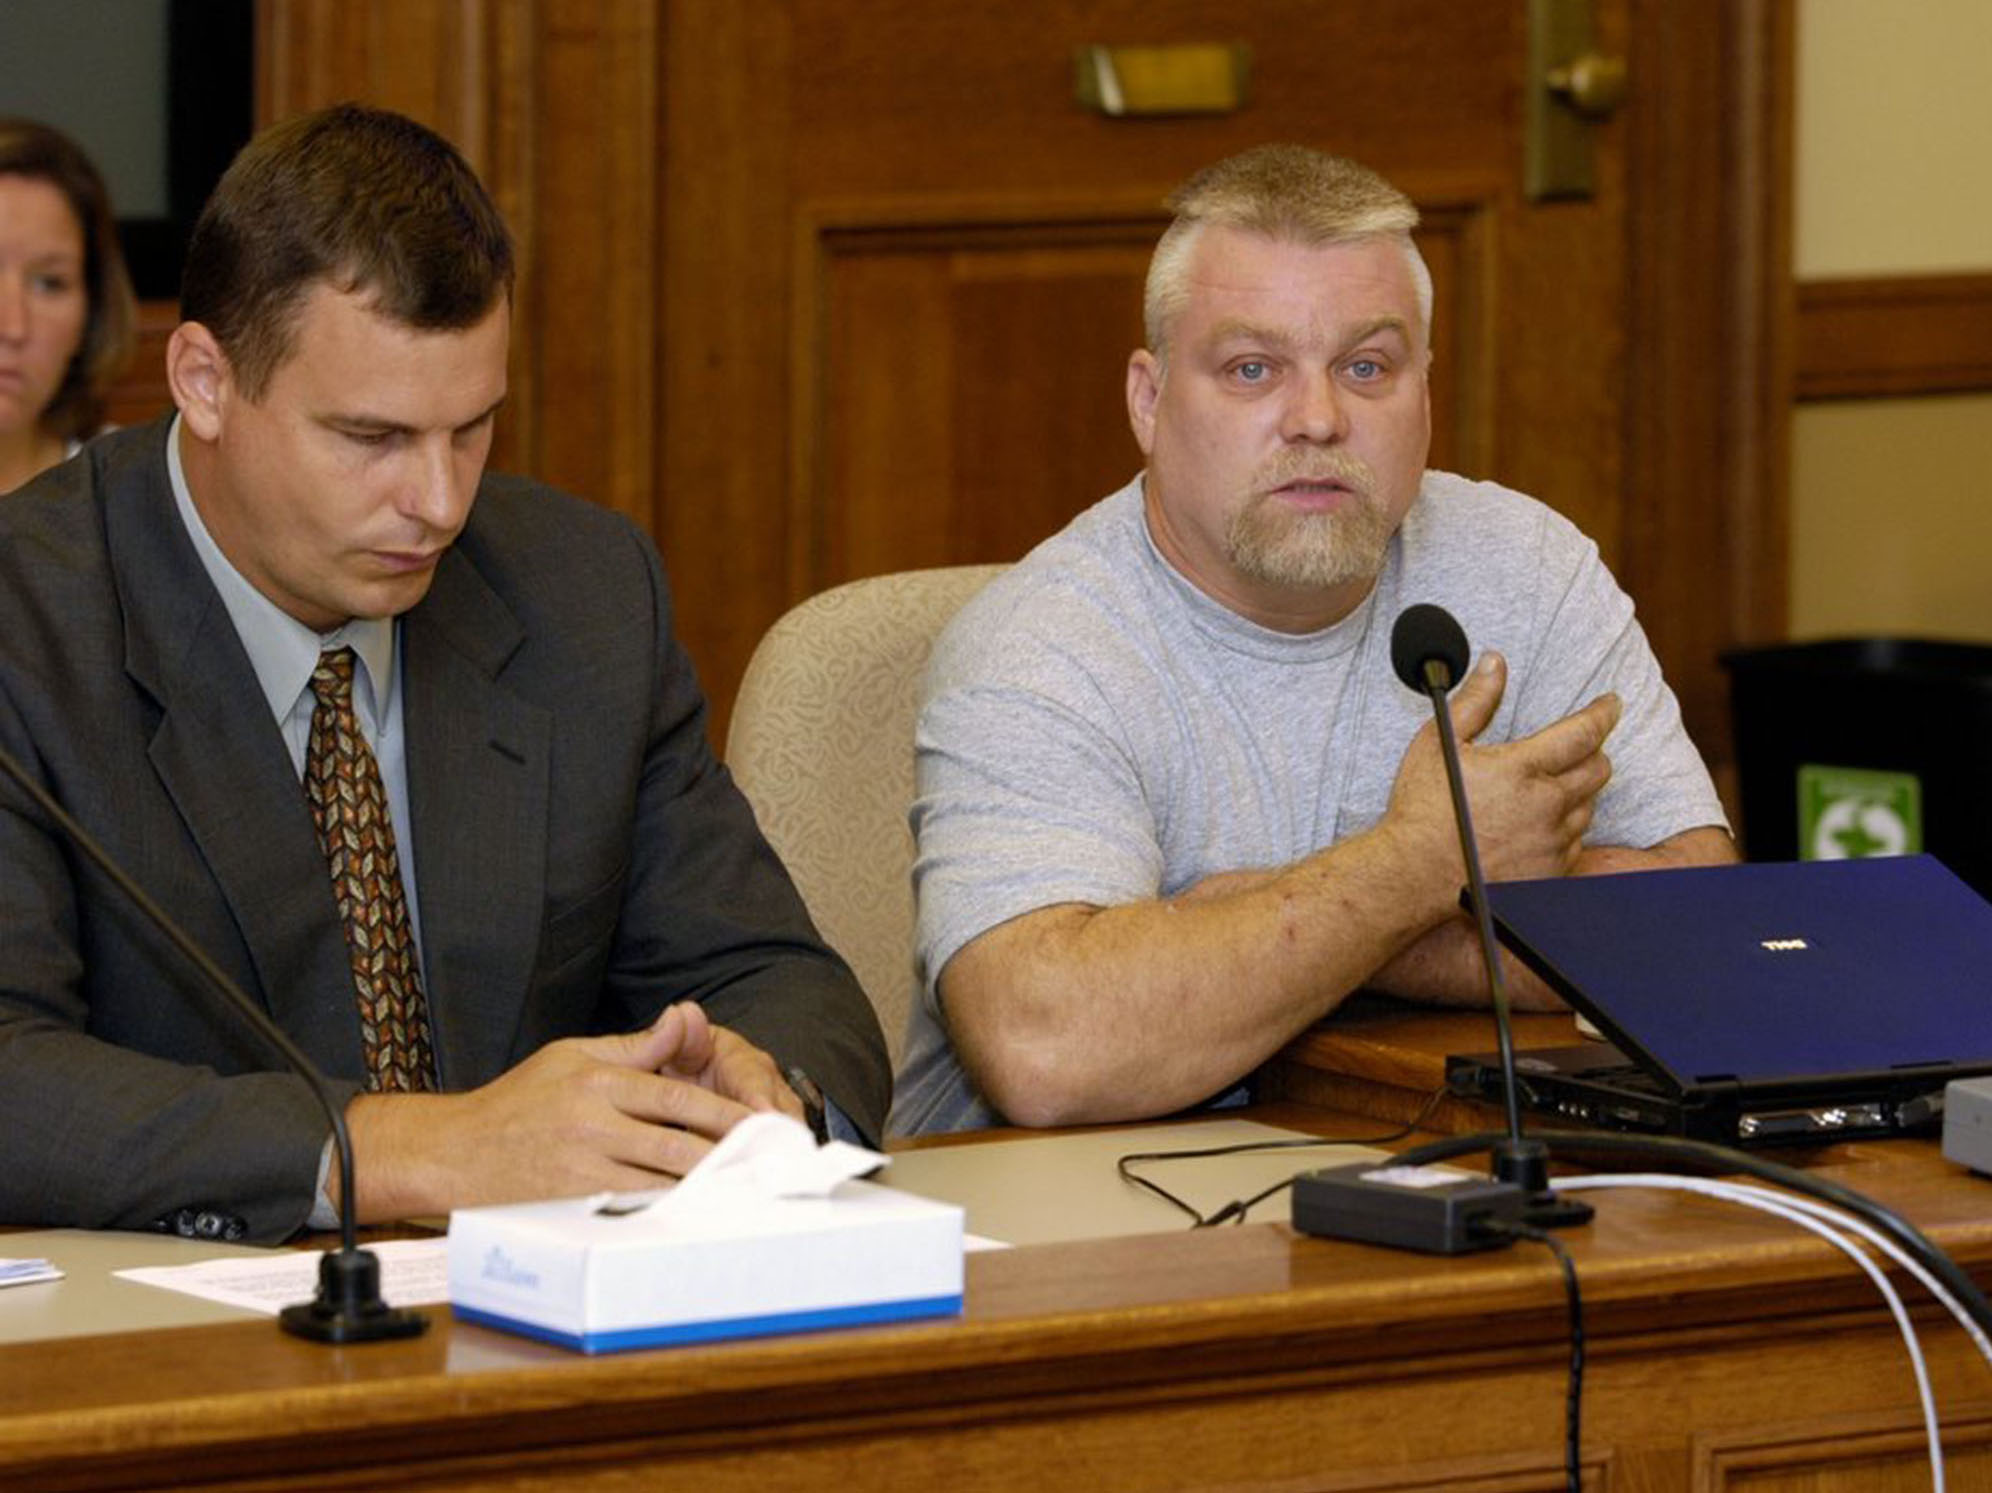 Steven Avery's new attorney discusses 'Making a Murderer' case